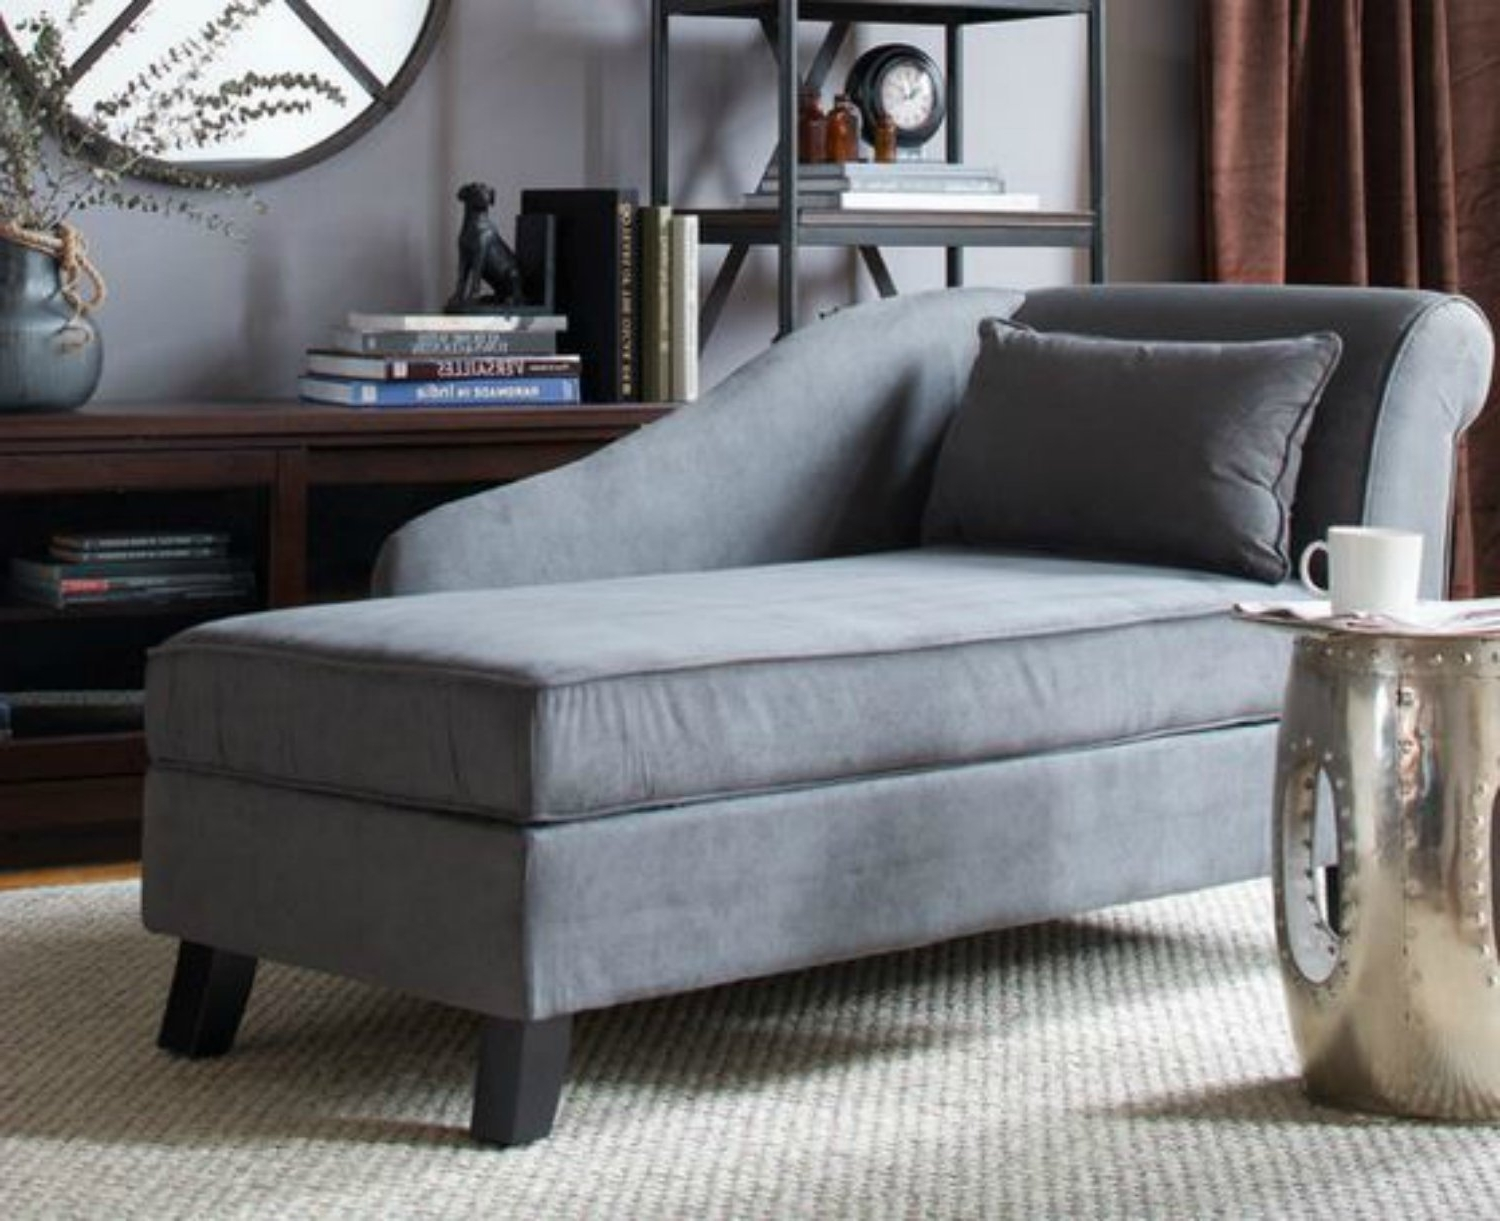 Favorite Lounge Chair : Wooden Chaise Lounge Chairs Chez Long Chair Inside Gray Chaise Lounge Chairs (View 15 of 15)